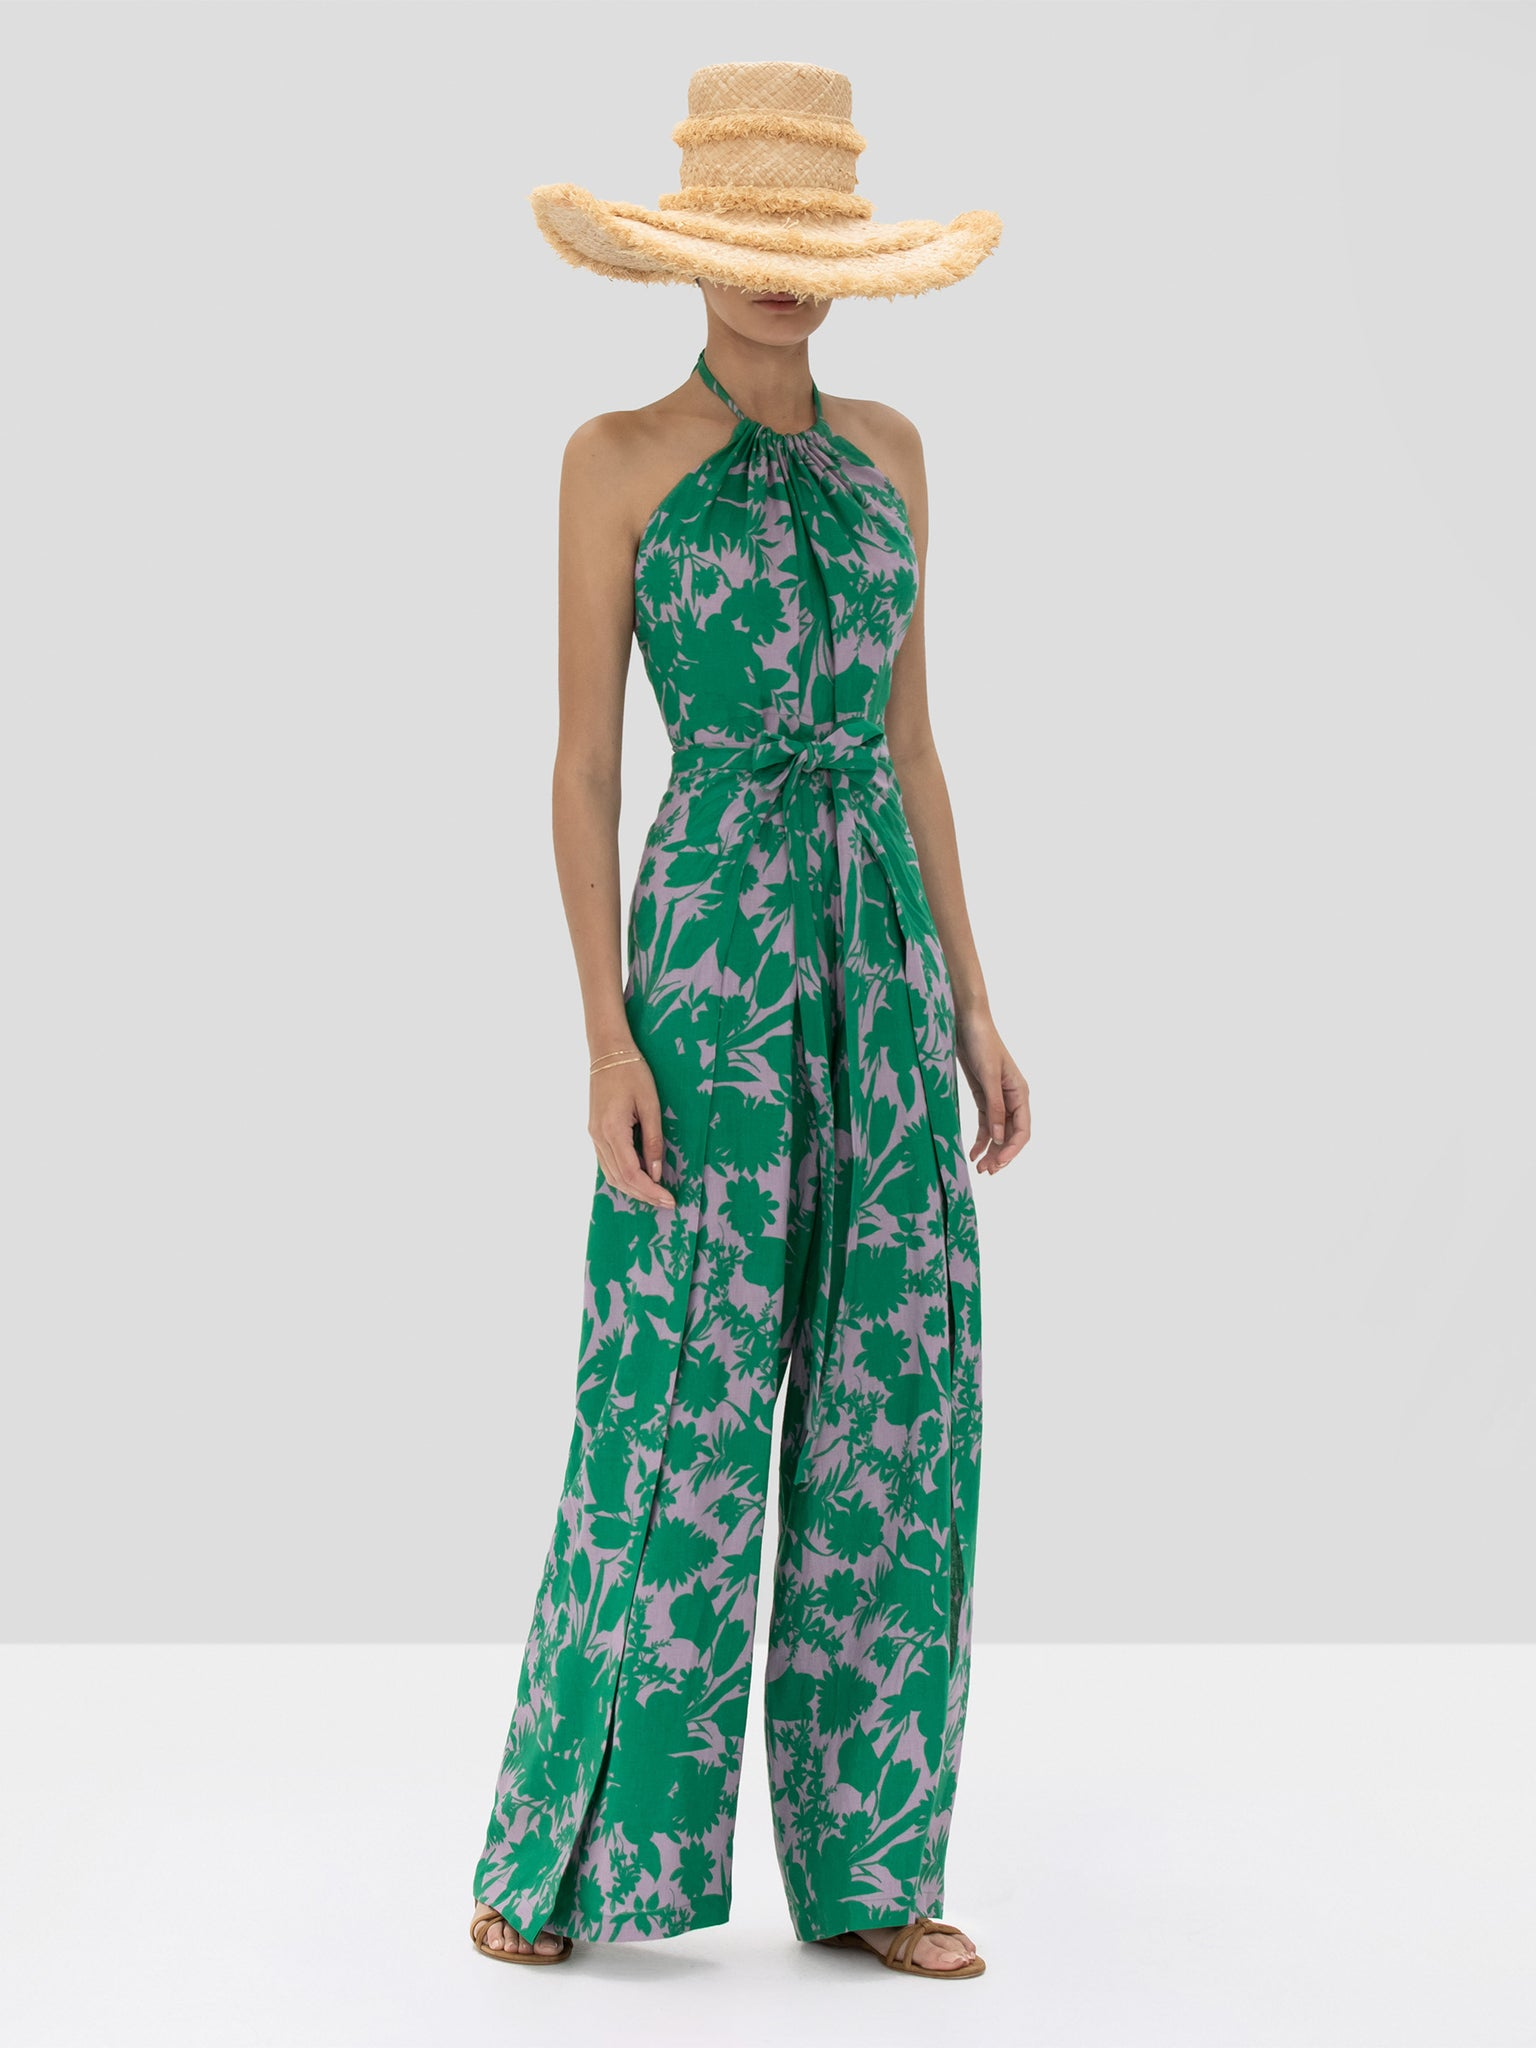 The Shasta Jumpsuit in Emerald Botanical from the Spring Summer 2020